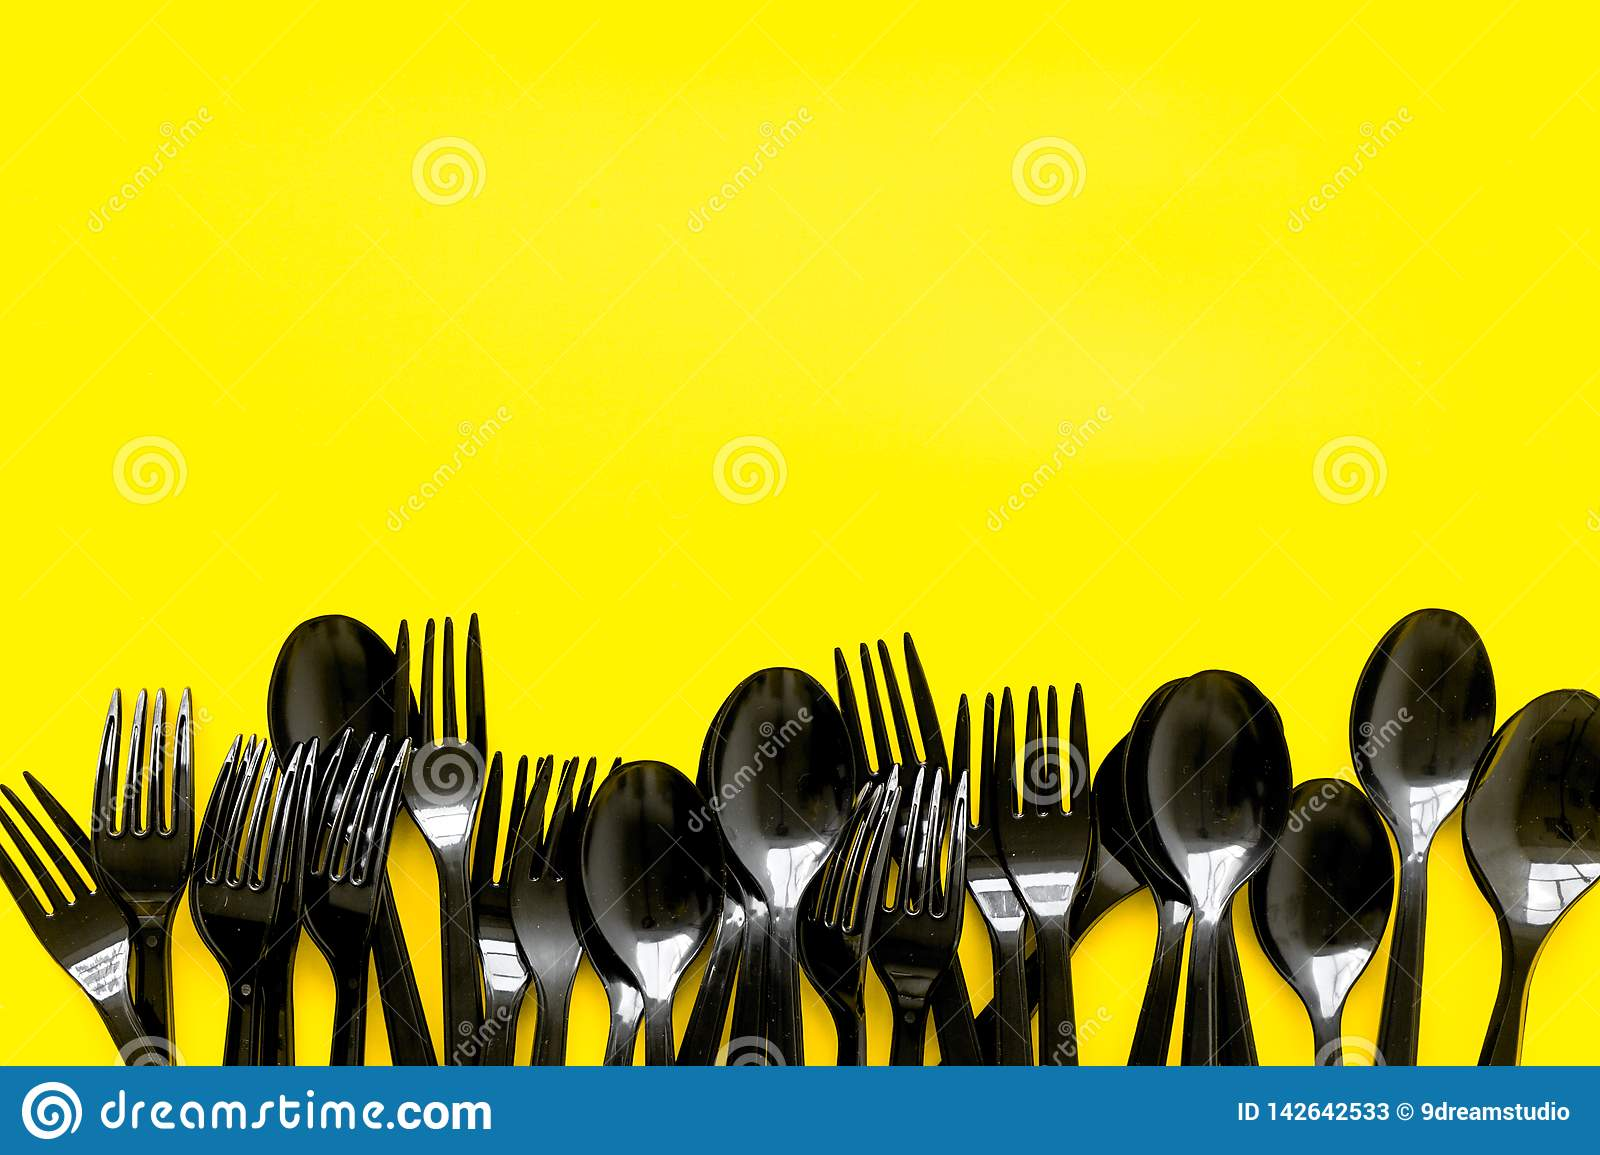 Plastic Flatware Forks Spoons For Eco And Earth Protection